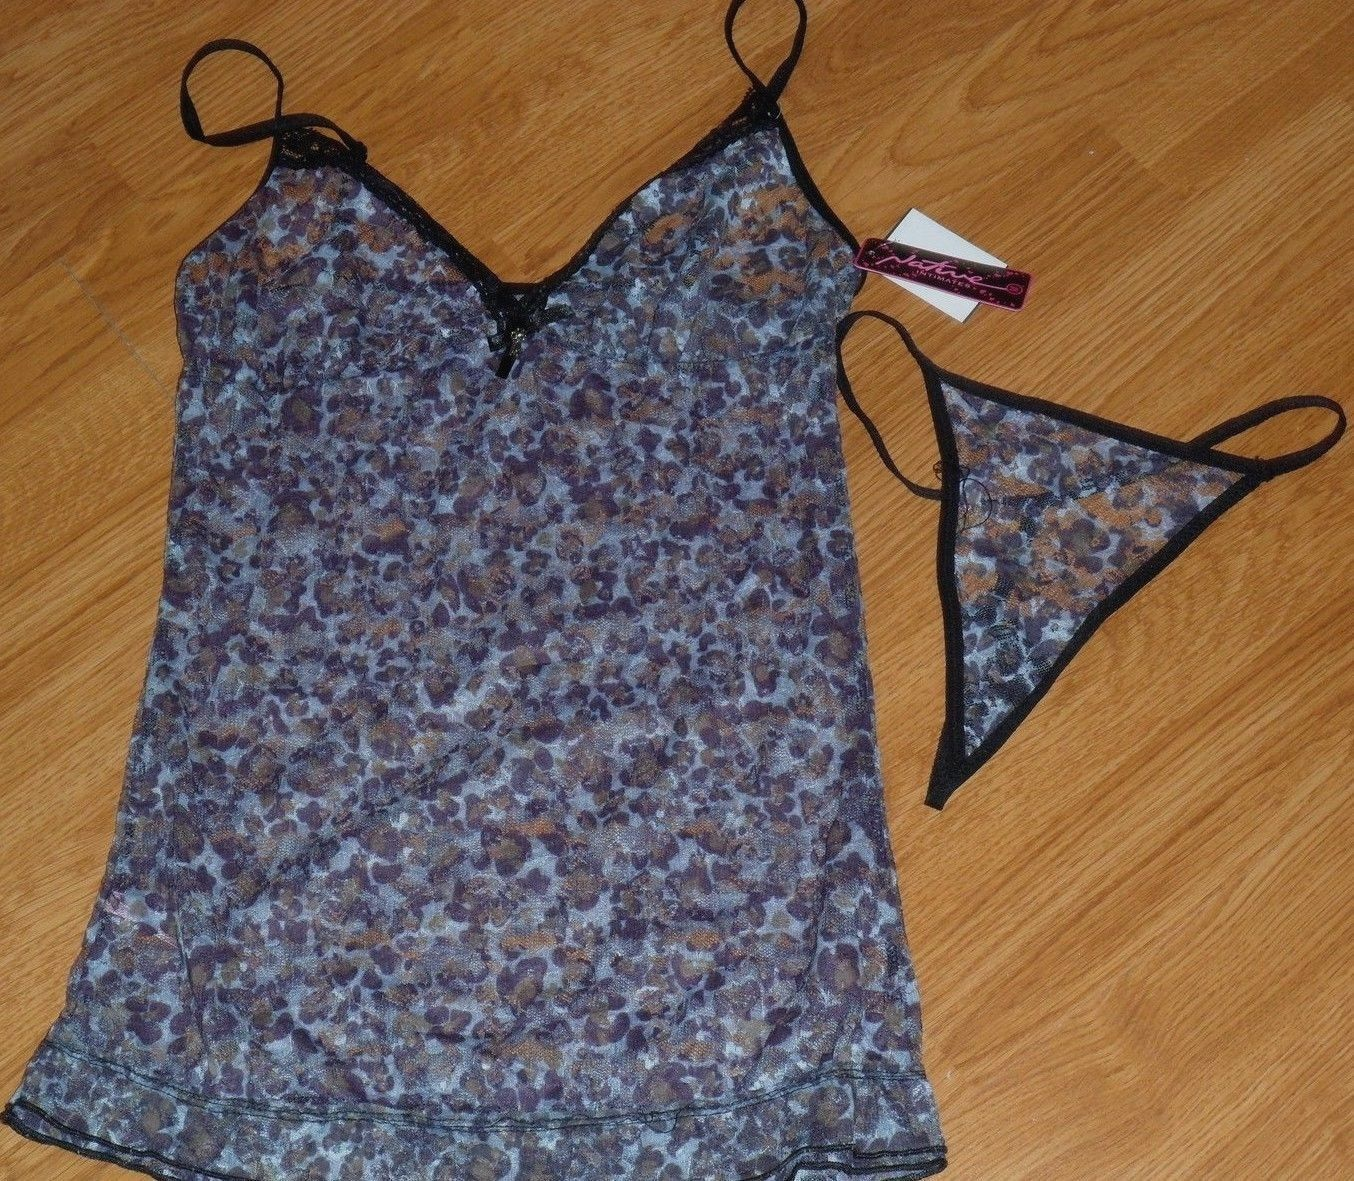 NATIVE INTIMATES TEDDIE SIZE M PURPLE FLORAL LACE SHEER THONG NWT - $16.99